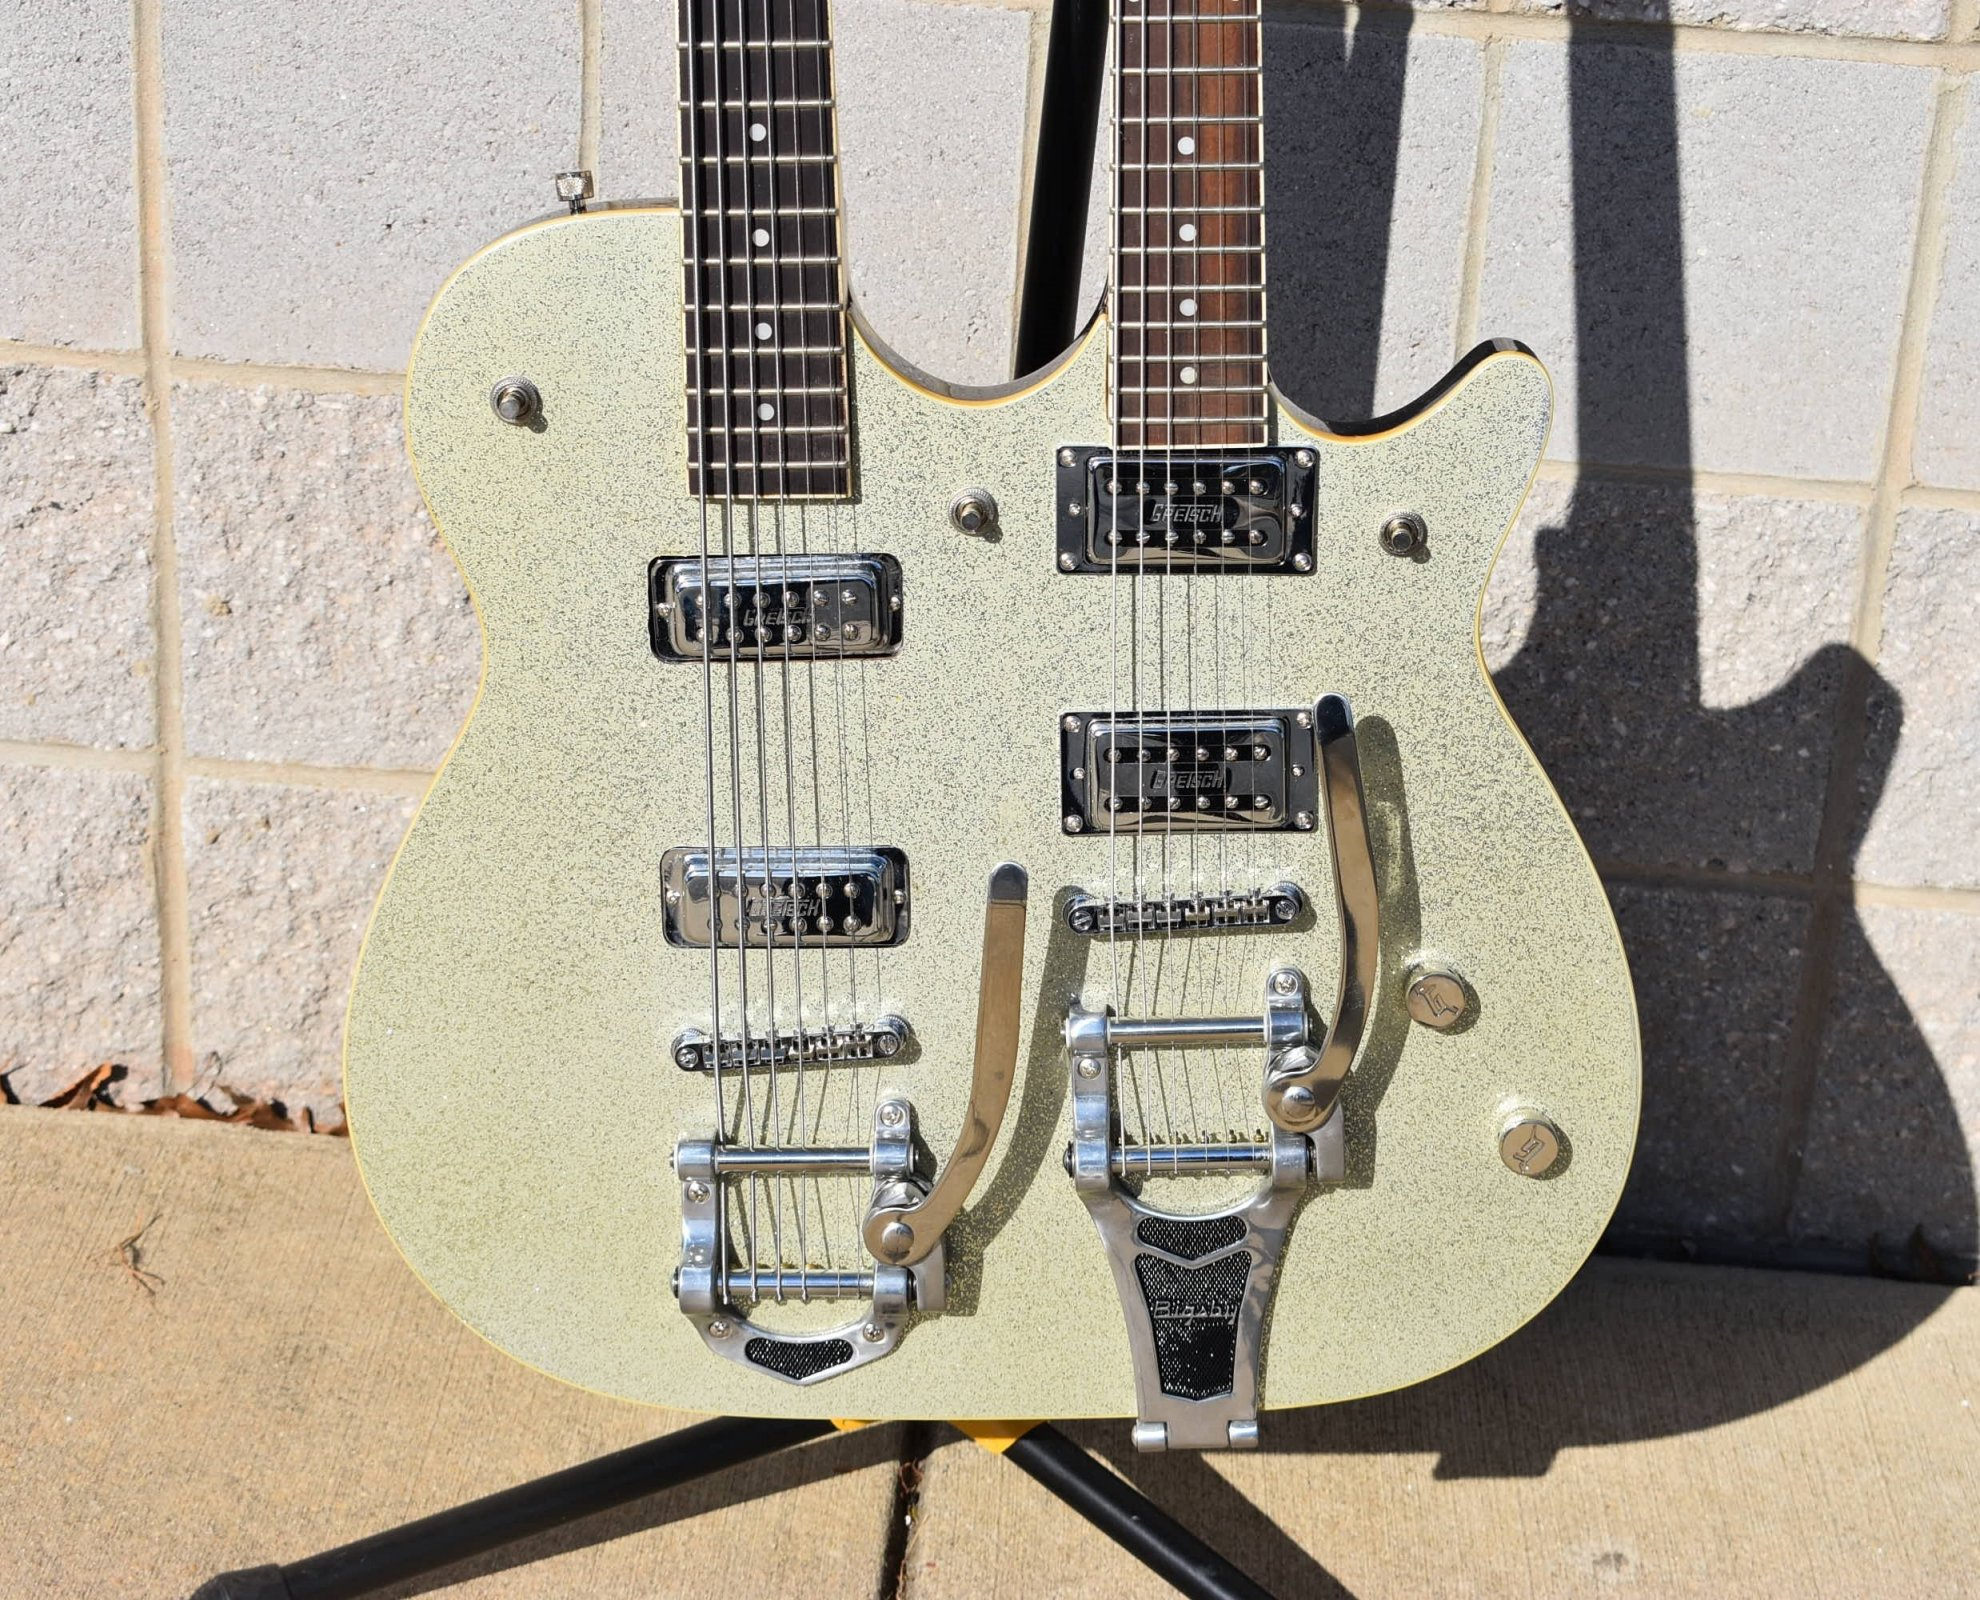 2003 Gretsch G1566 Synchromatic Sparkle Double Jet